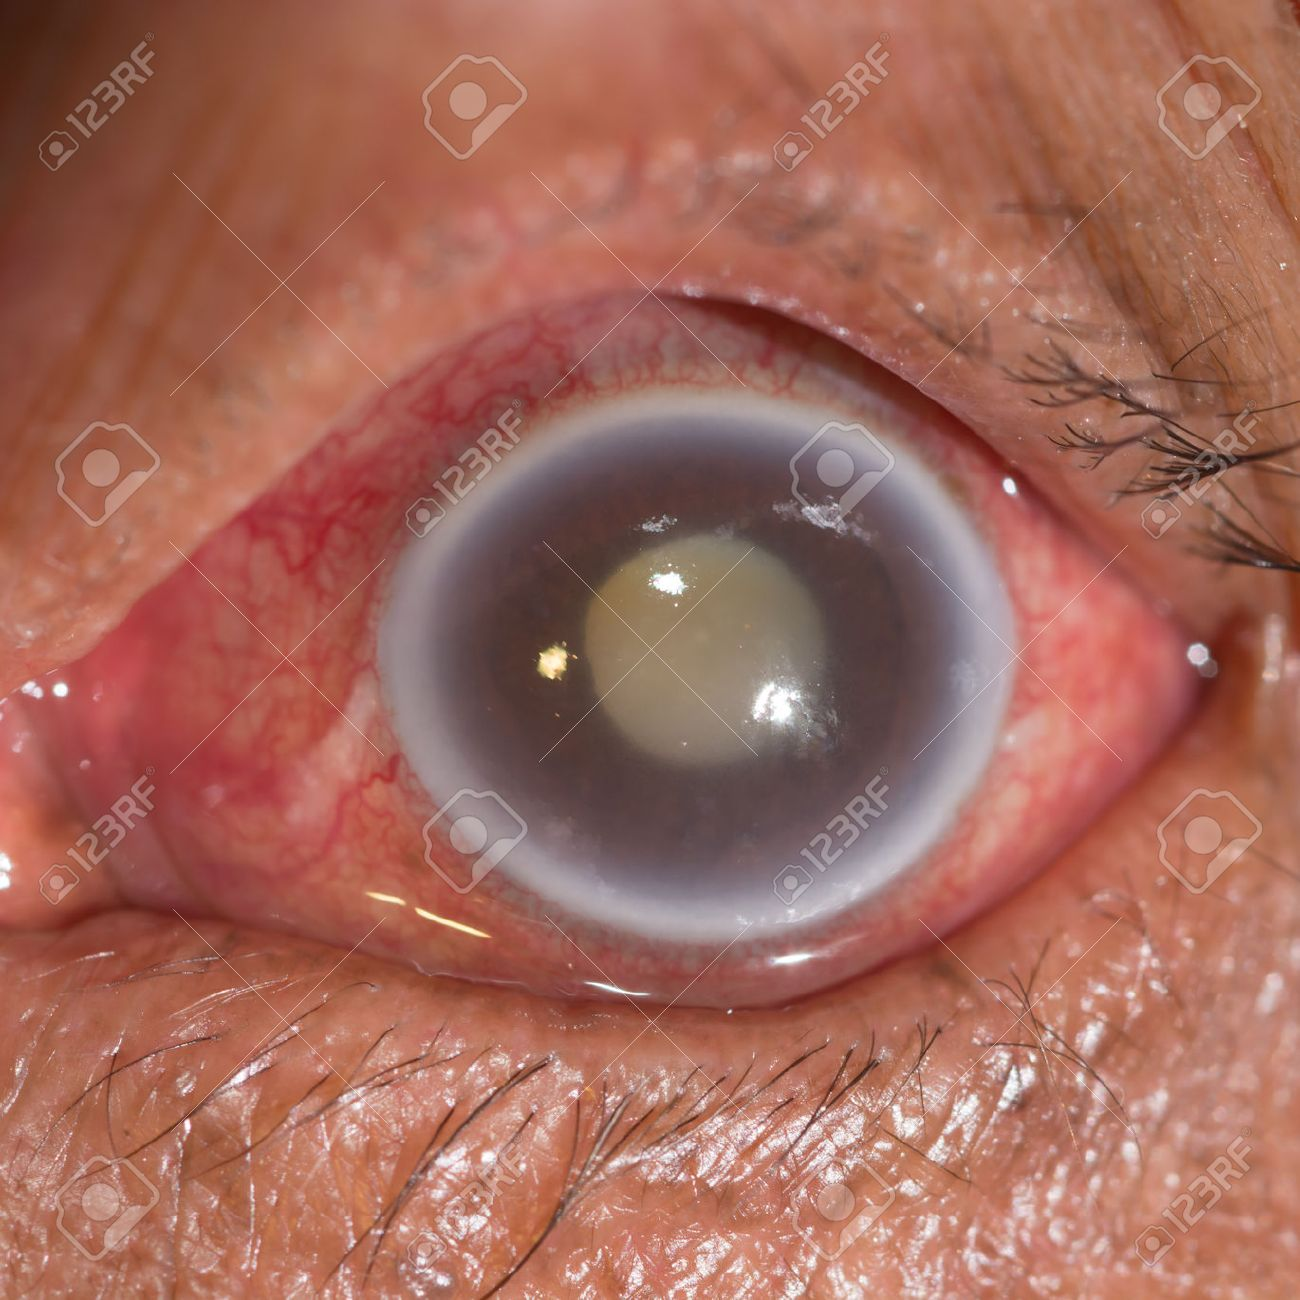 Close Up Of The Acute Angle Closure Glaucoma During Eye ...